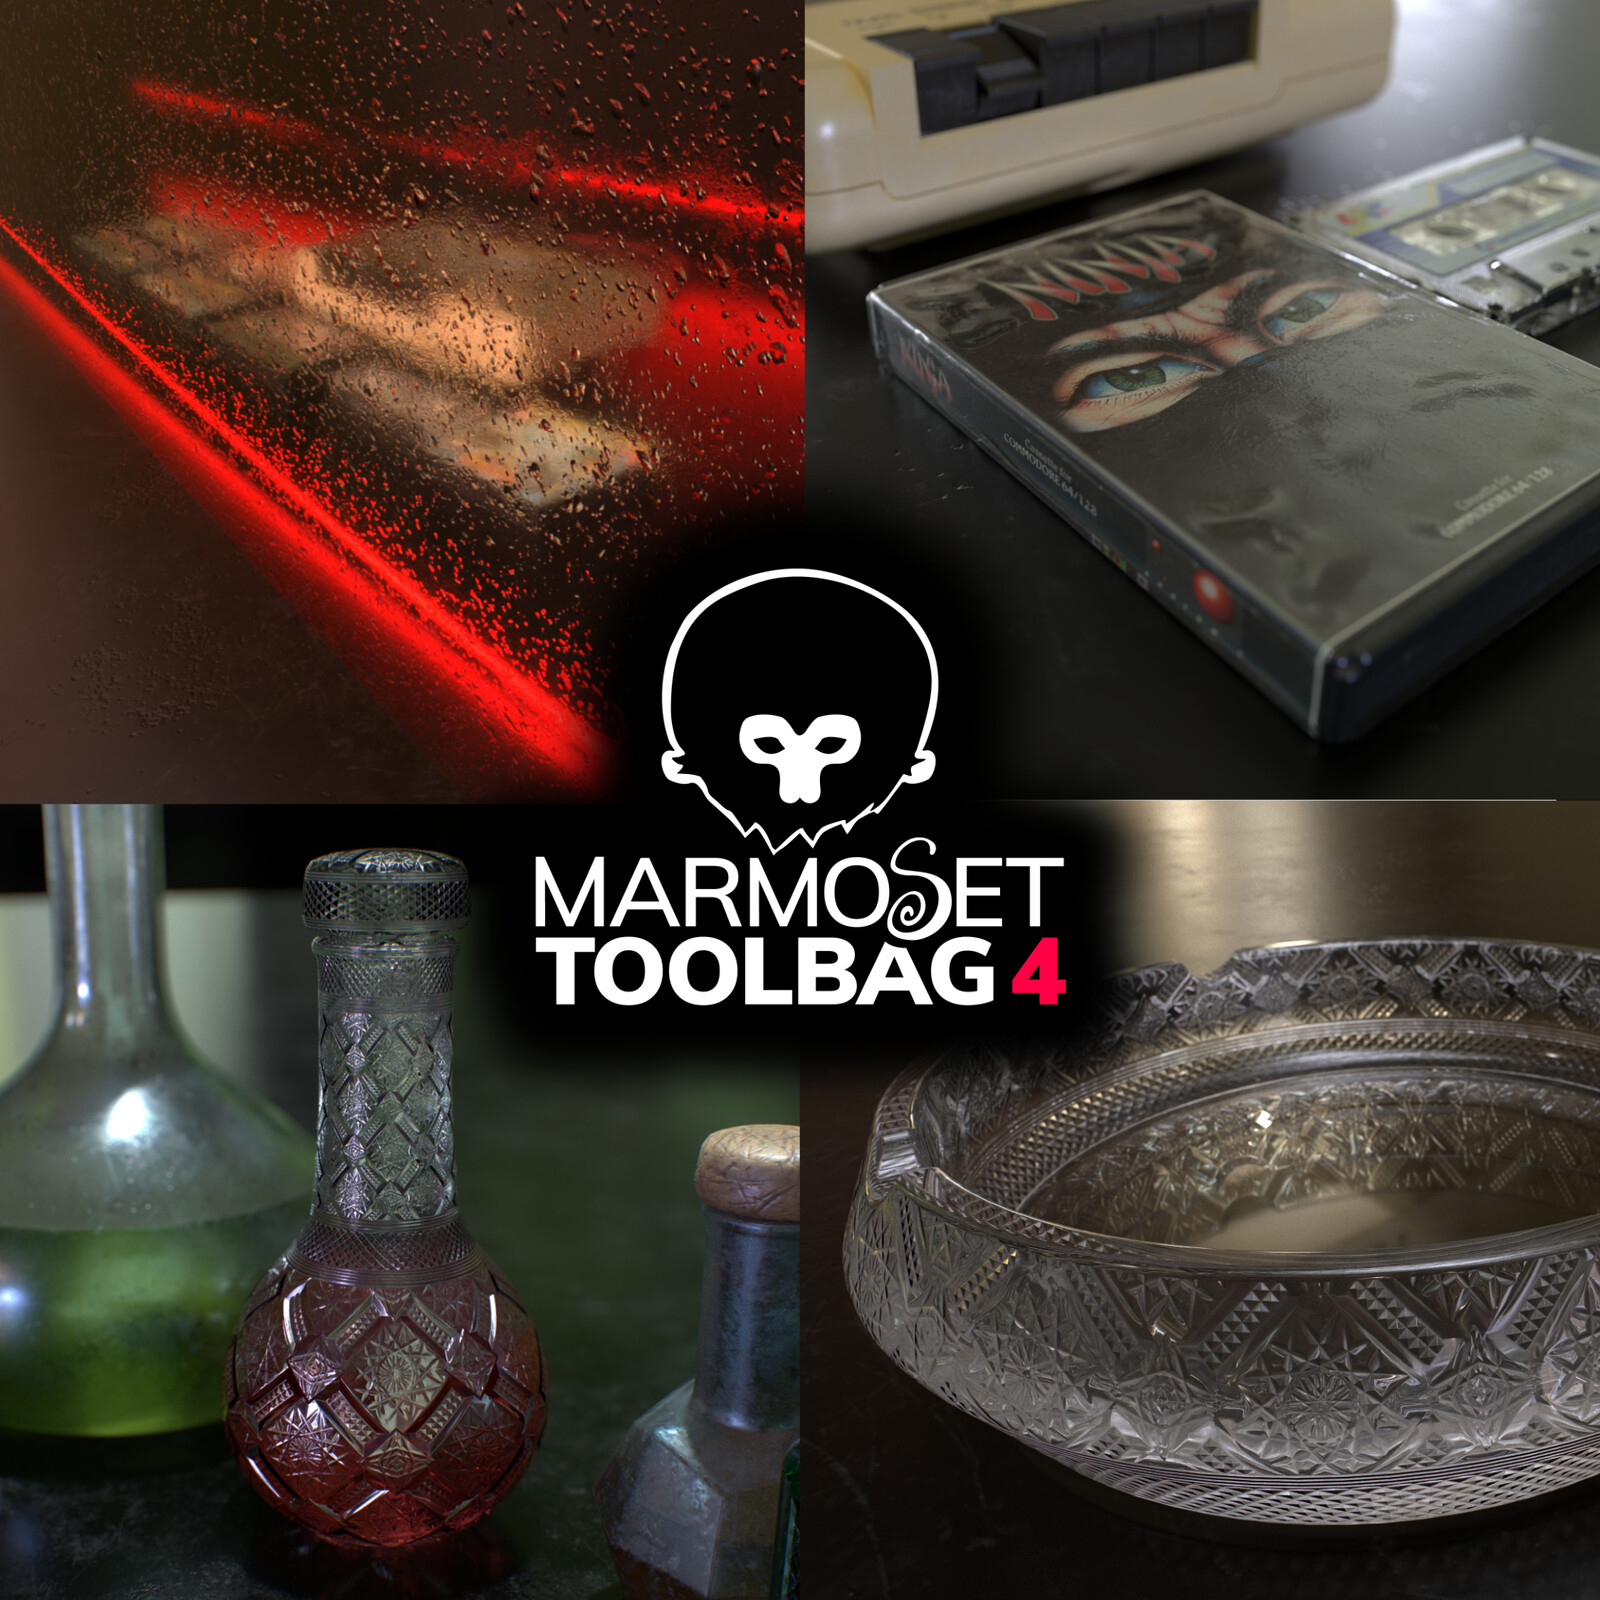 Refractive Materials with Marmoset Toolbag 4